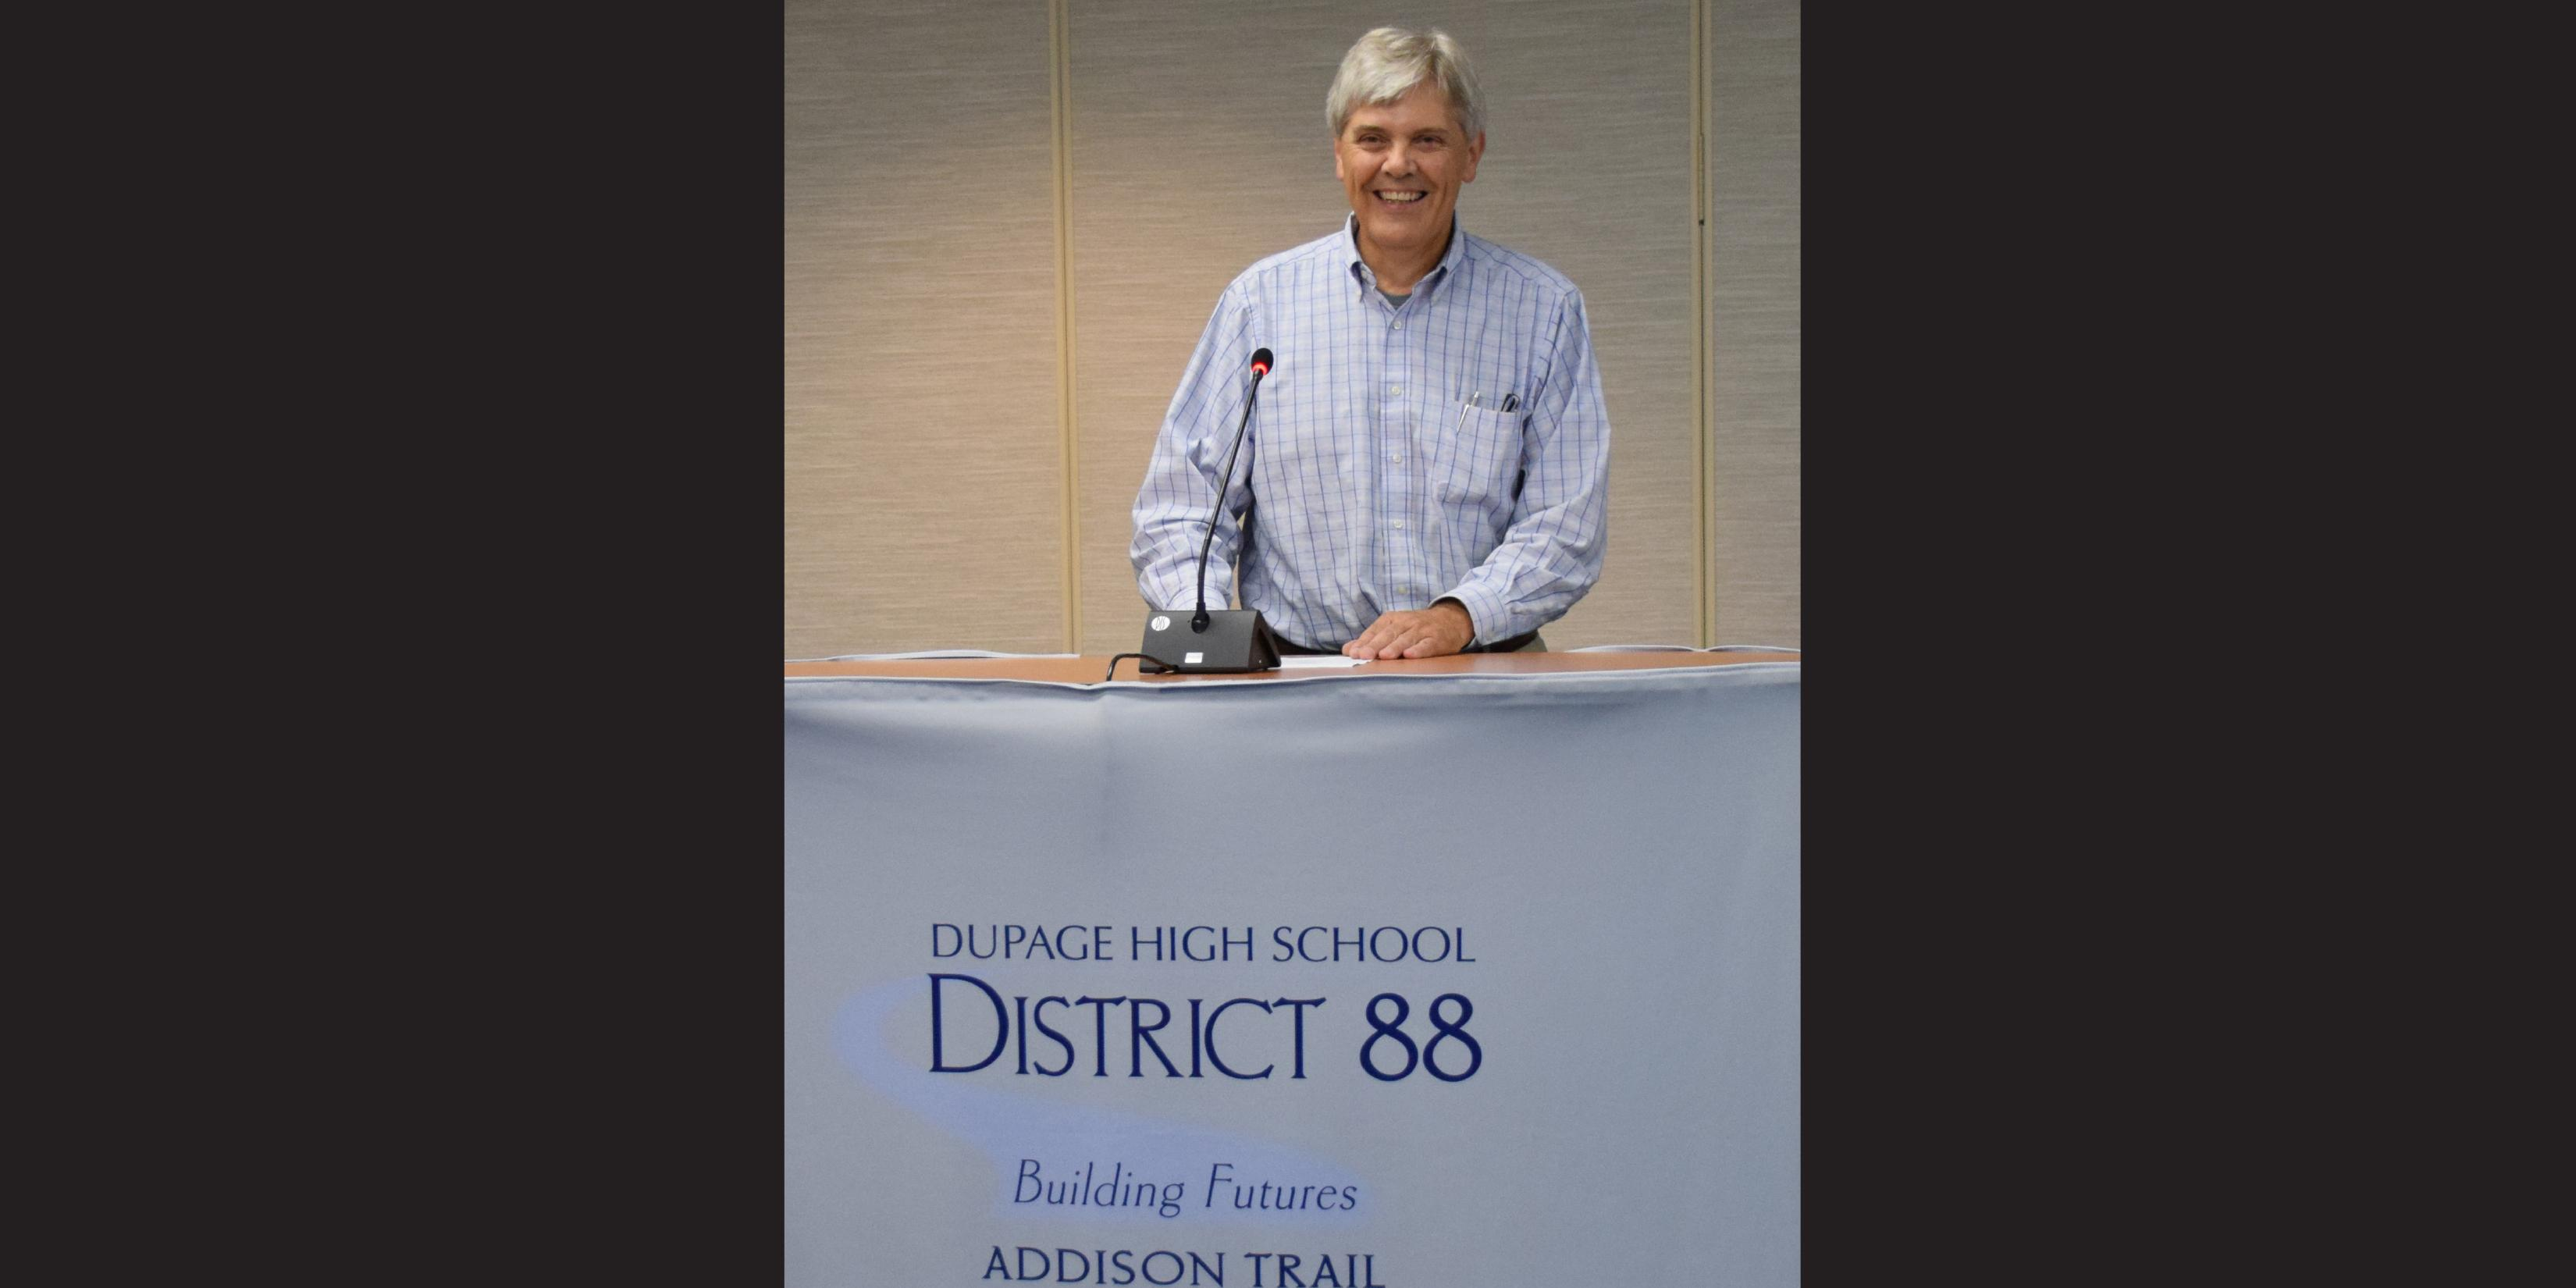 District 88 Board of Education appoints new Board member